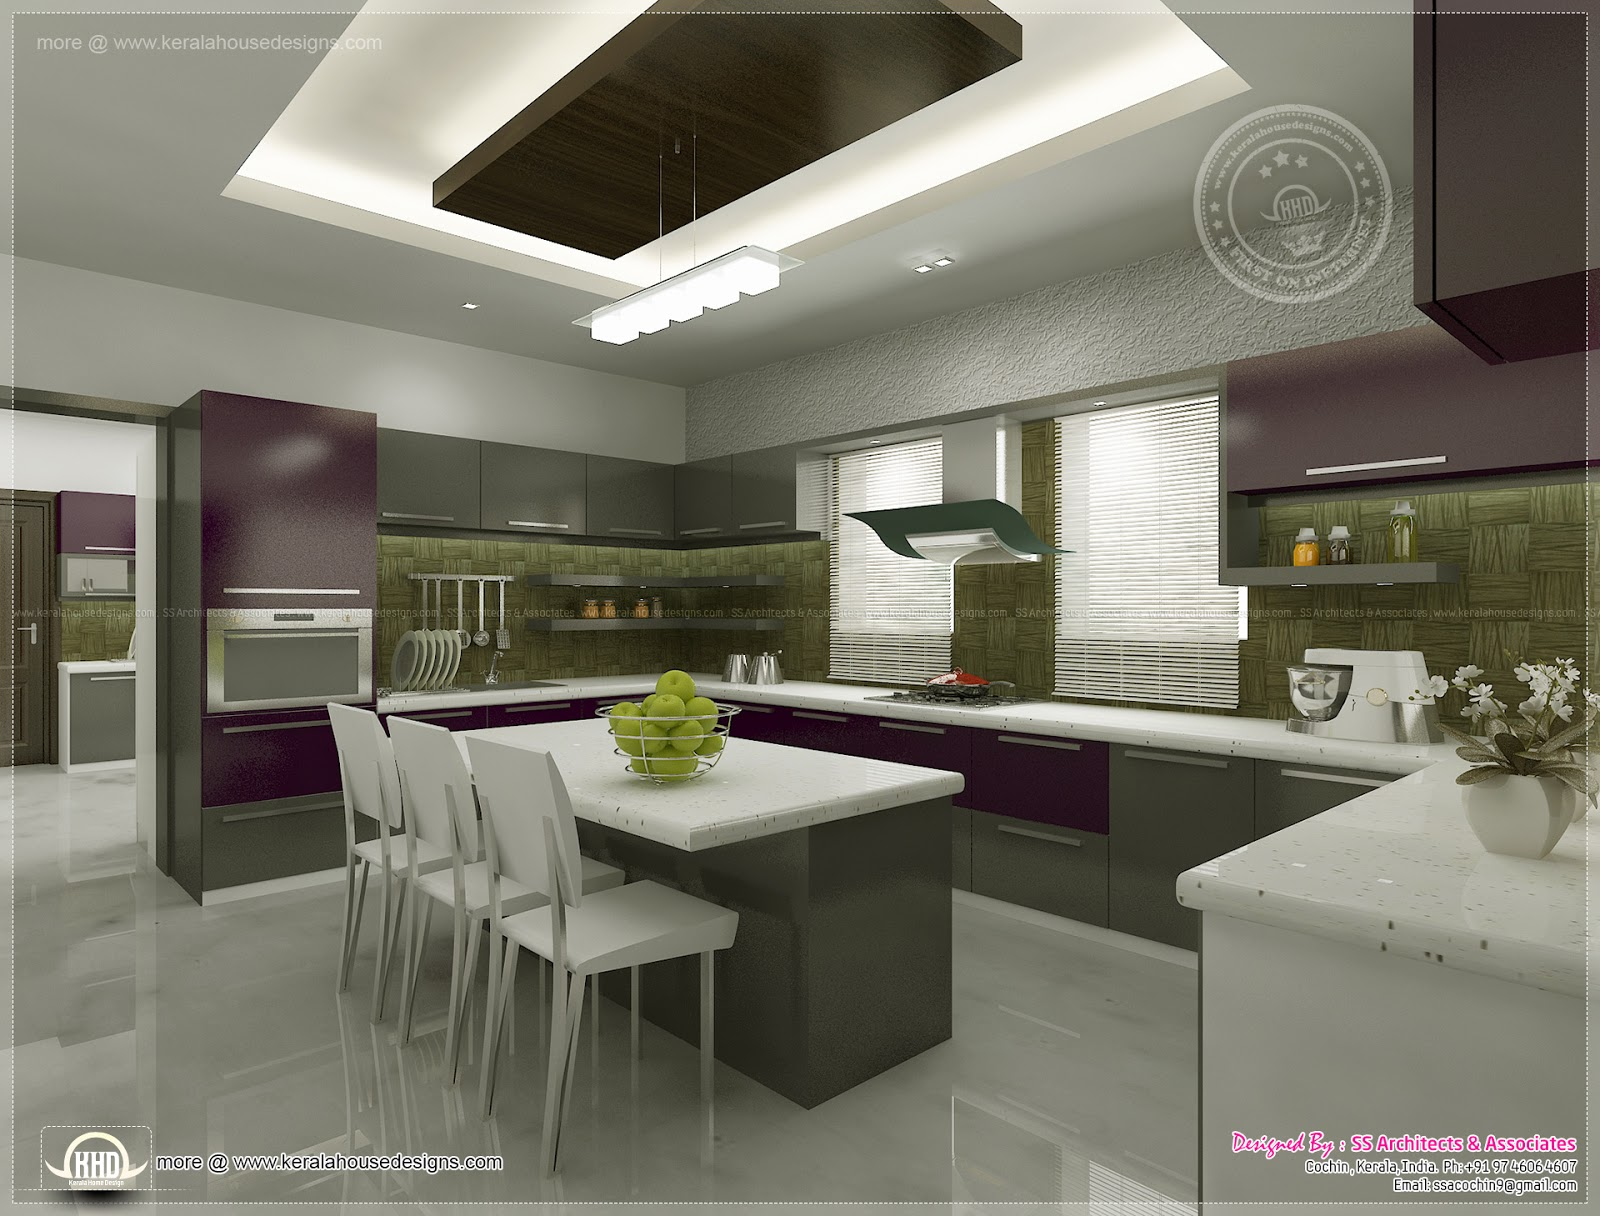 Kitchen interior views by ss architects cochin kerala for Interior designs videos